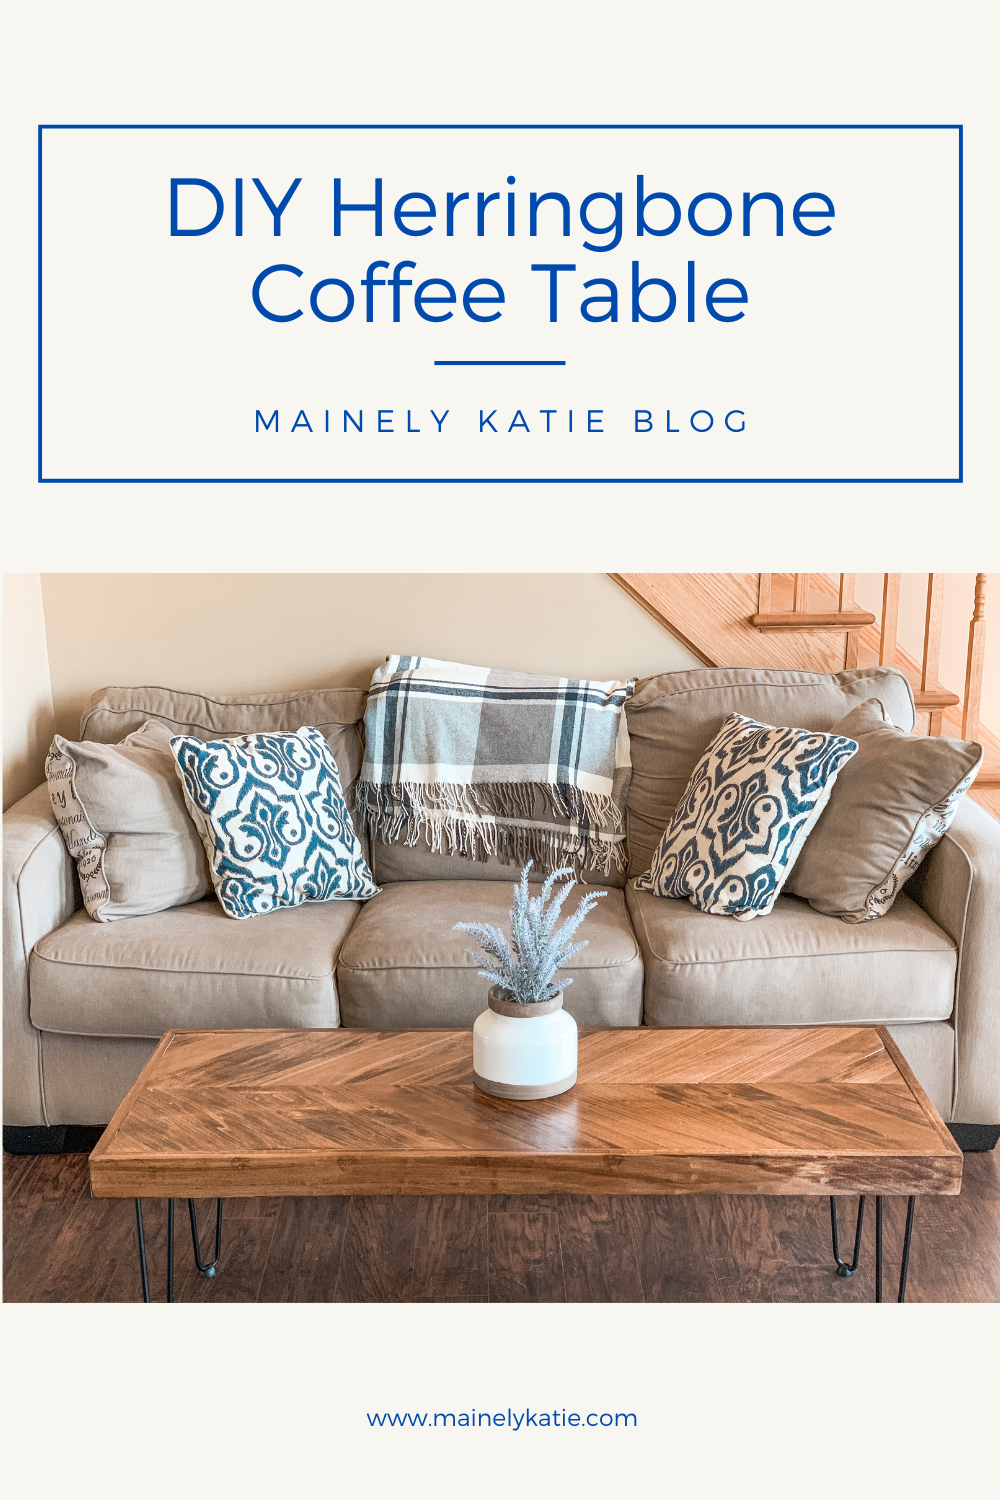 I really love the way that this coffee table turned out! If you are familiar with a few power tools, you will have no problems making your own DIY Herringbone coffee table. Check out my post for the full step by step tutorial!